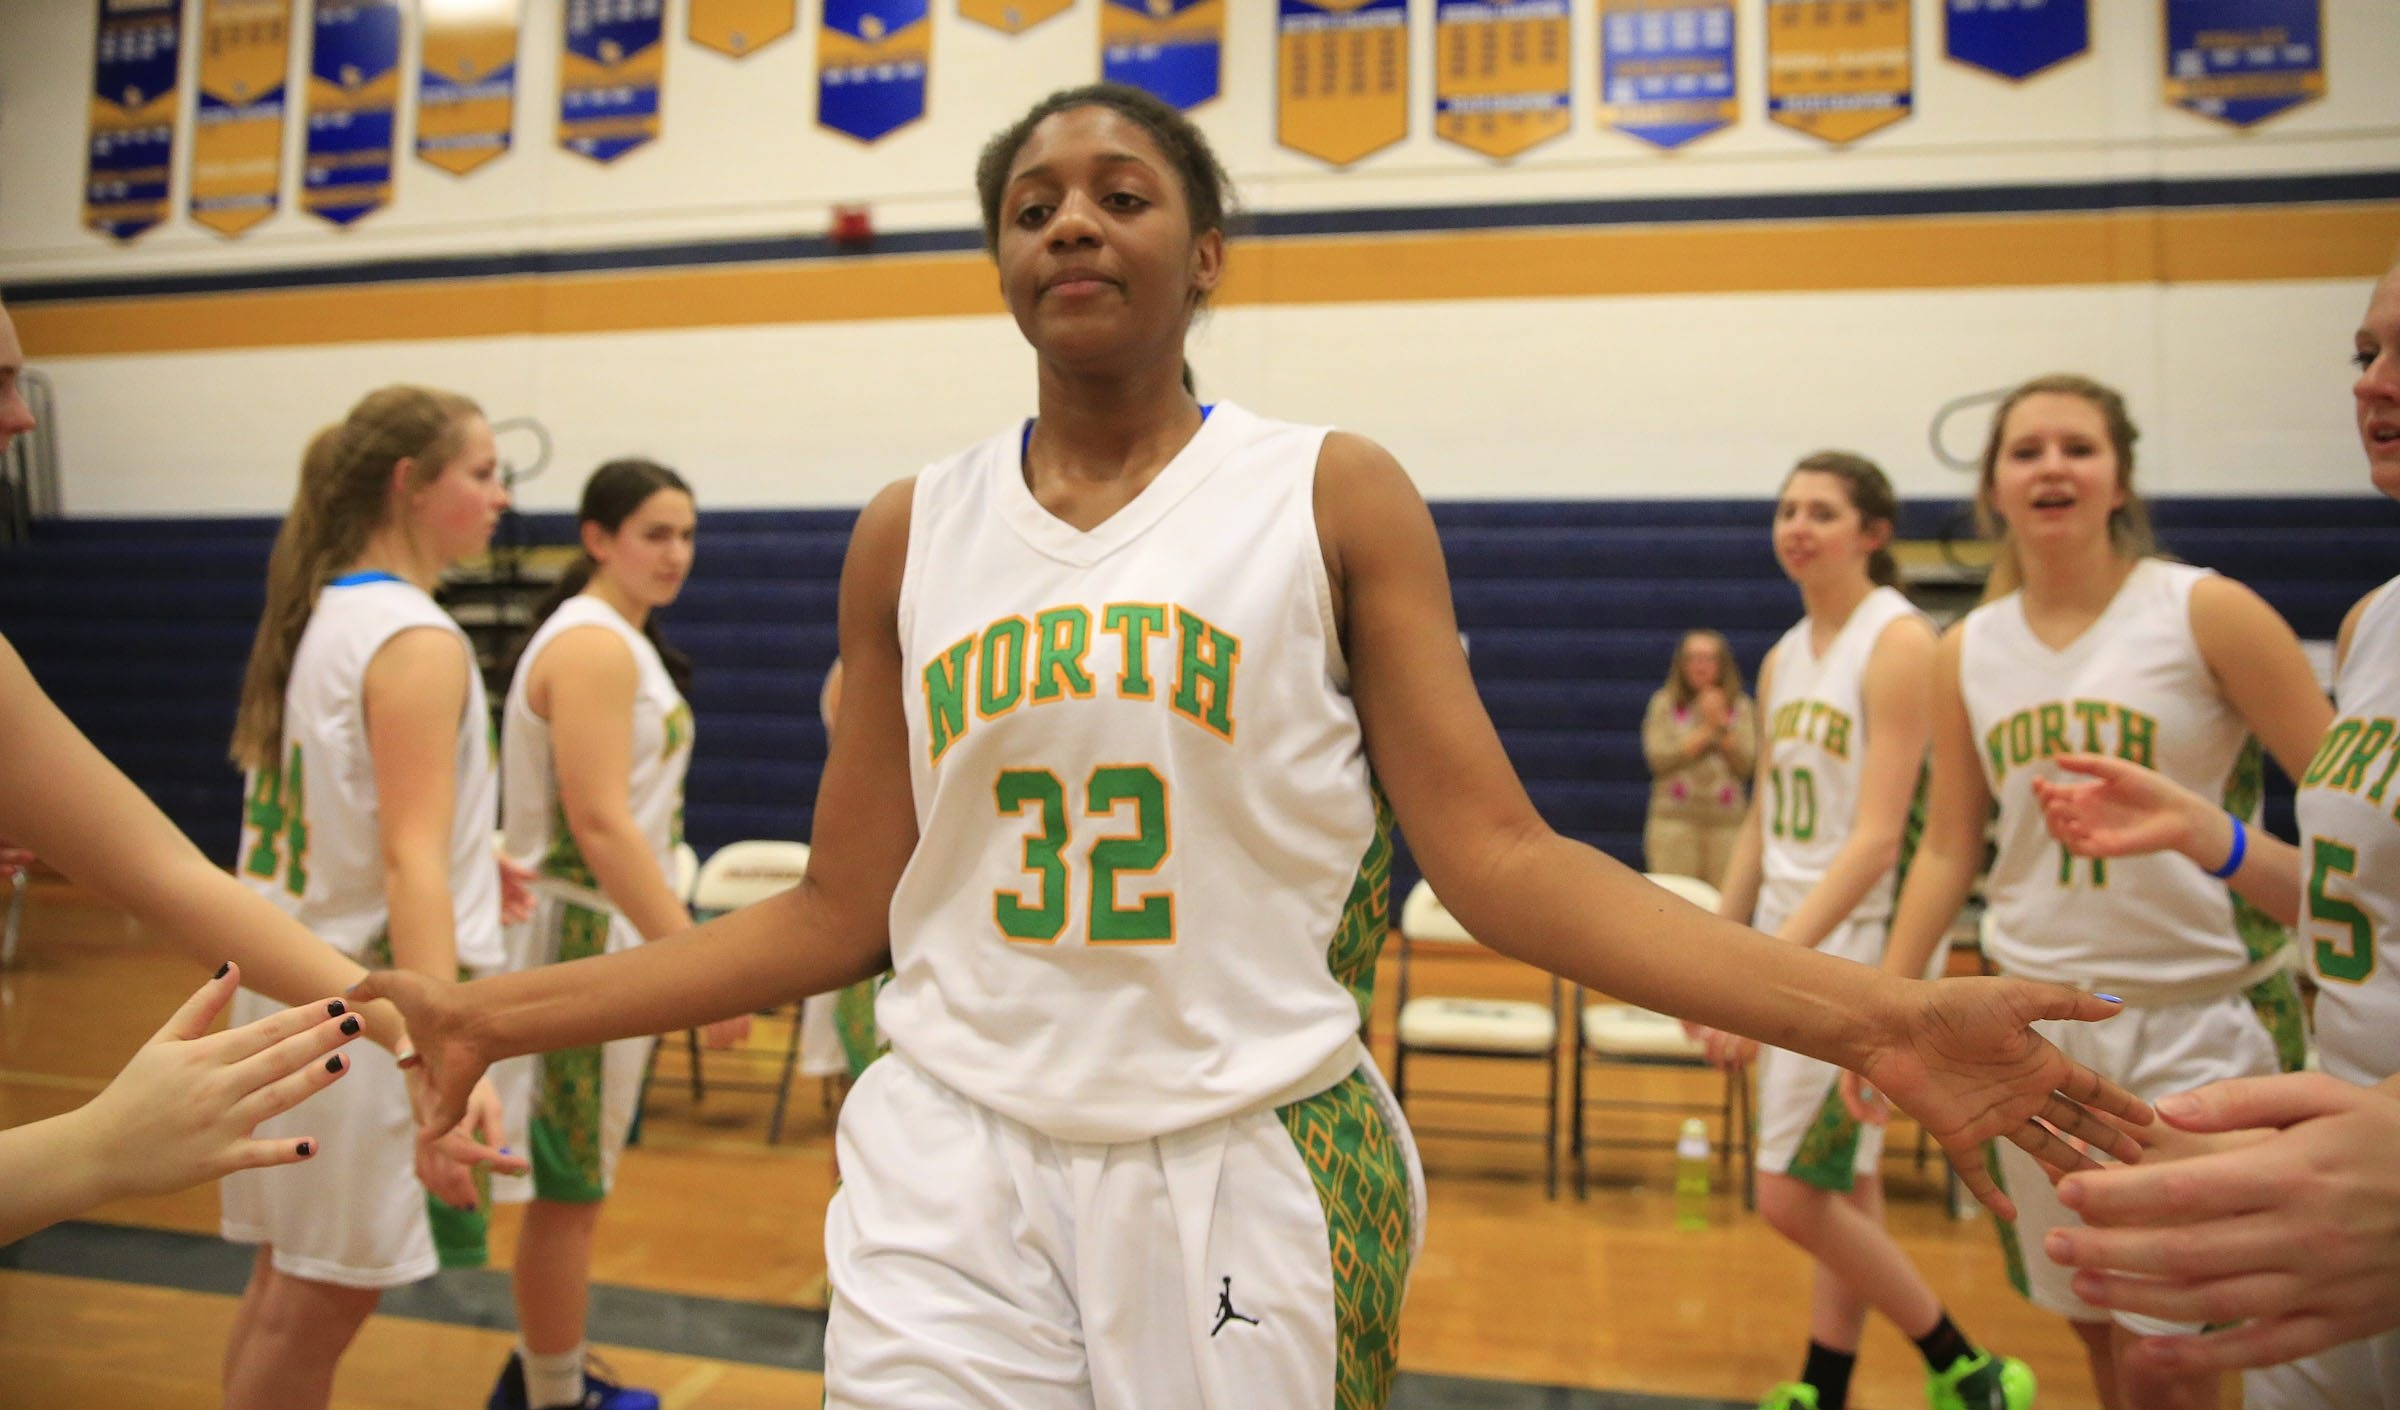 Williamsville North's Ericka Taplin is introduced prior to playing Lockport during first half playoff action at Sweet Home high school  on Friday, March 6, 2015.(Harry Scull Jr./Buffalo News)